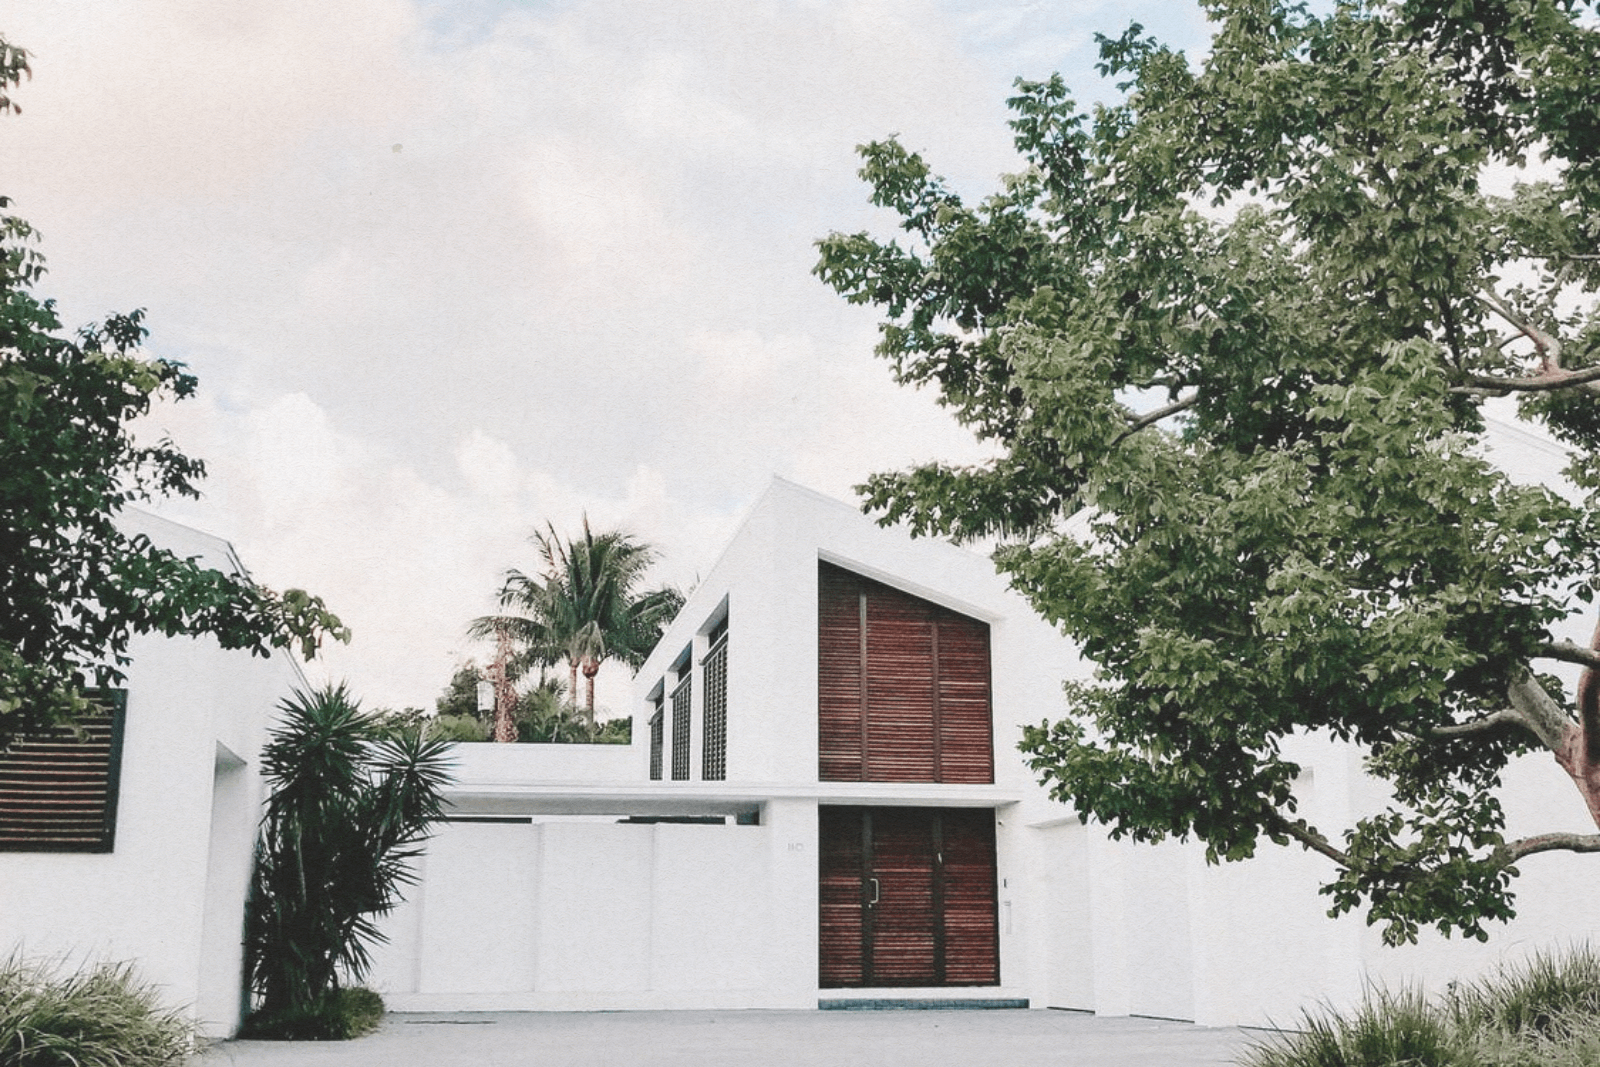 large white modern home with trees